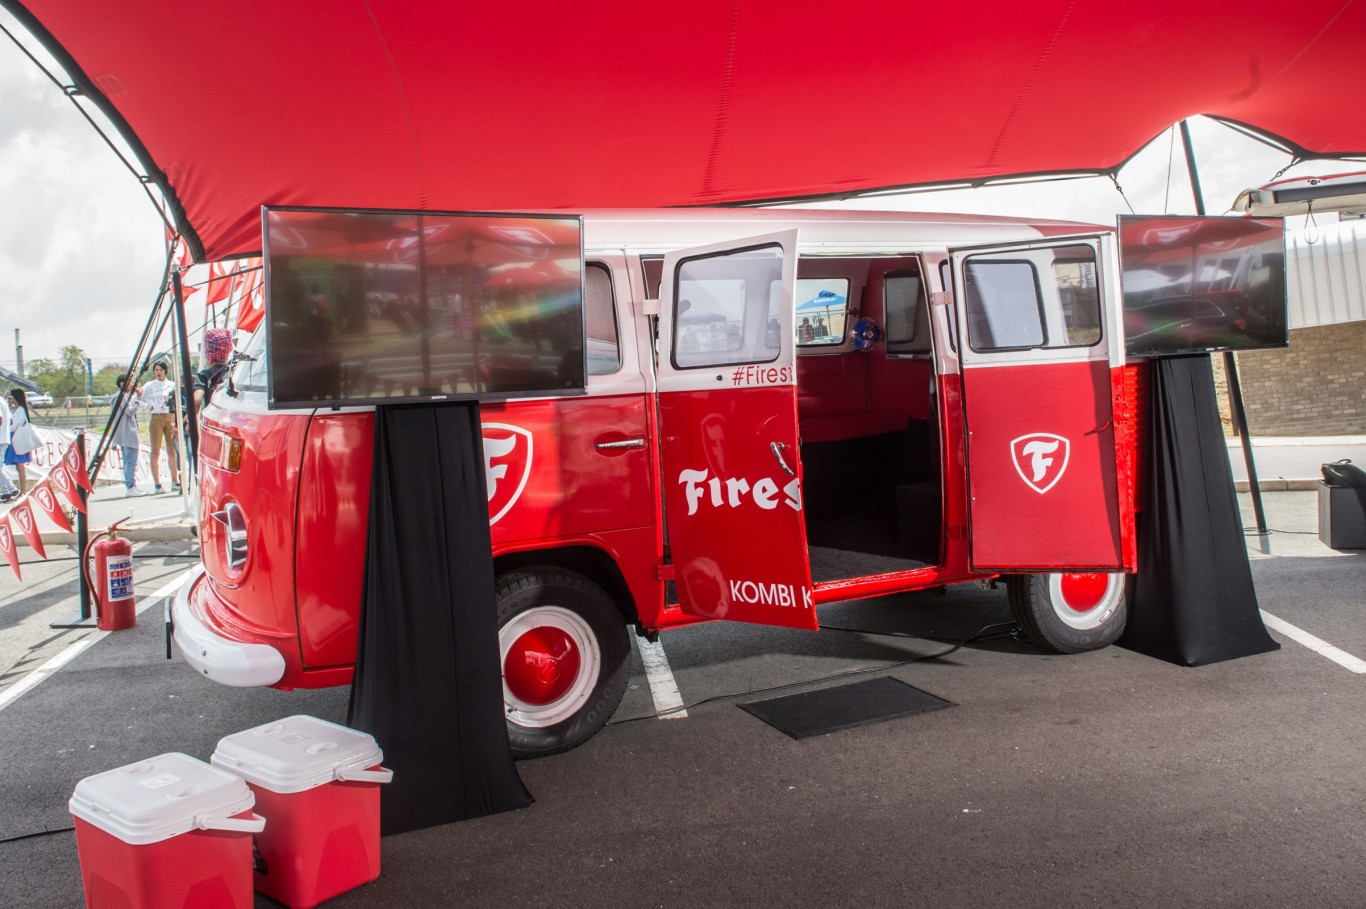 Firestone tunes in to social sharing with its #FirestoneKK Campaign